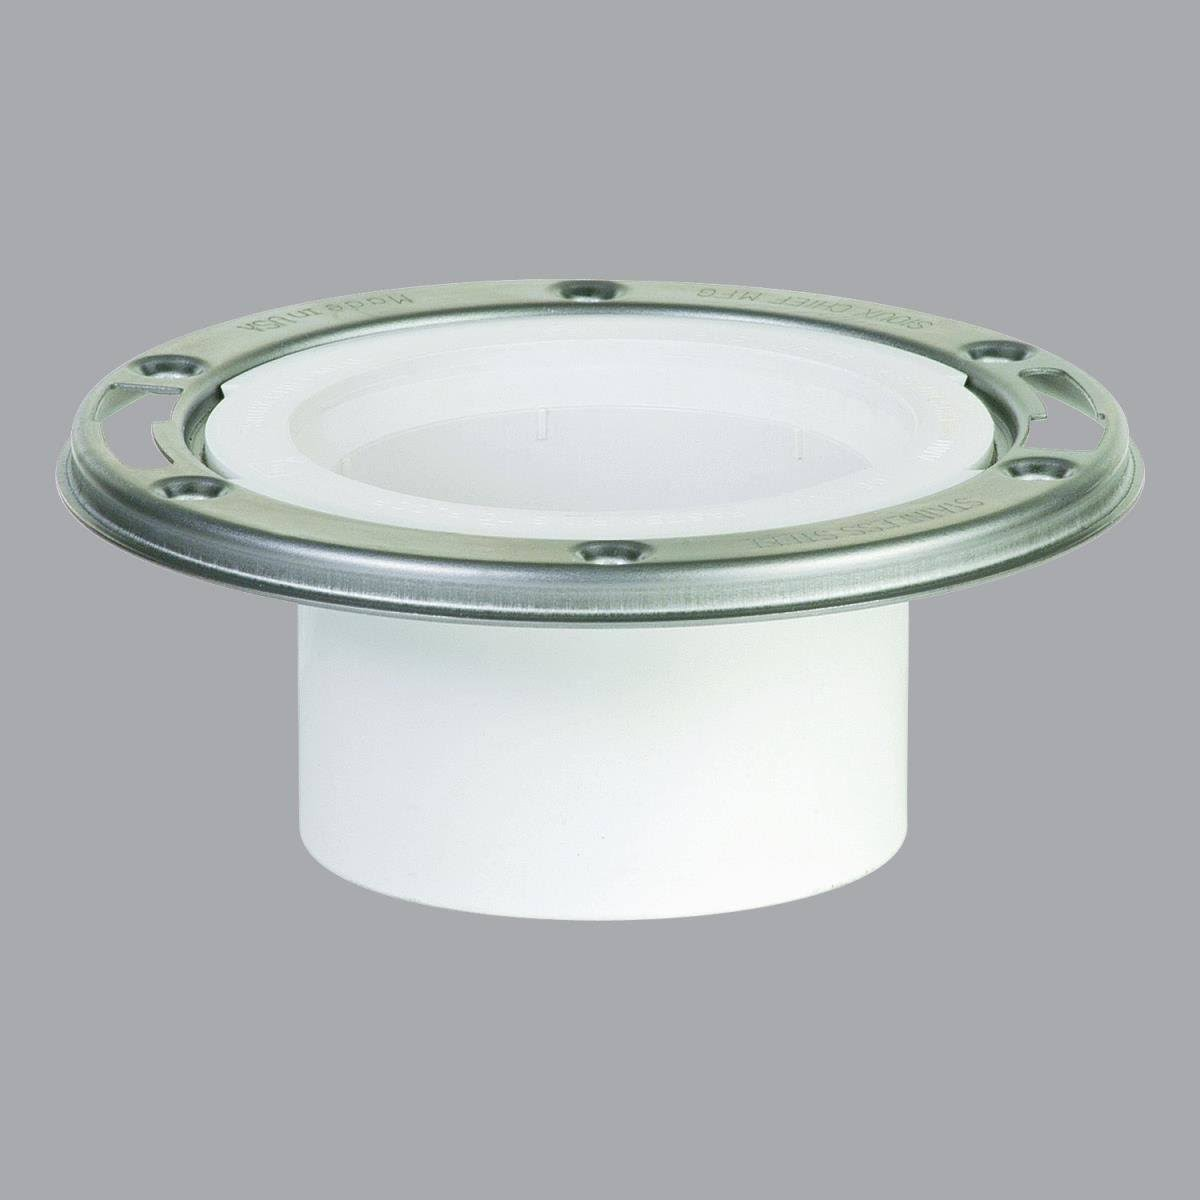 Sioux Chief Open PVC Closet Flange with Stainless Steel Ring